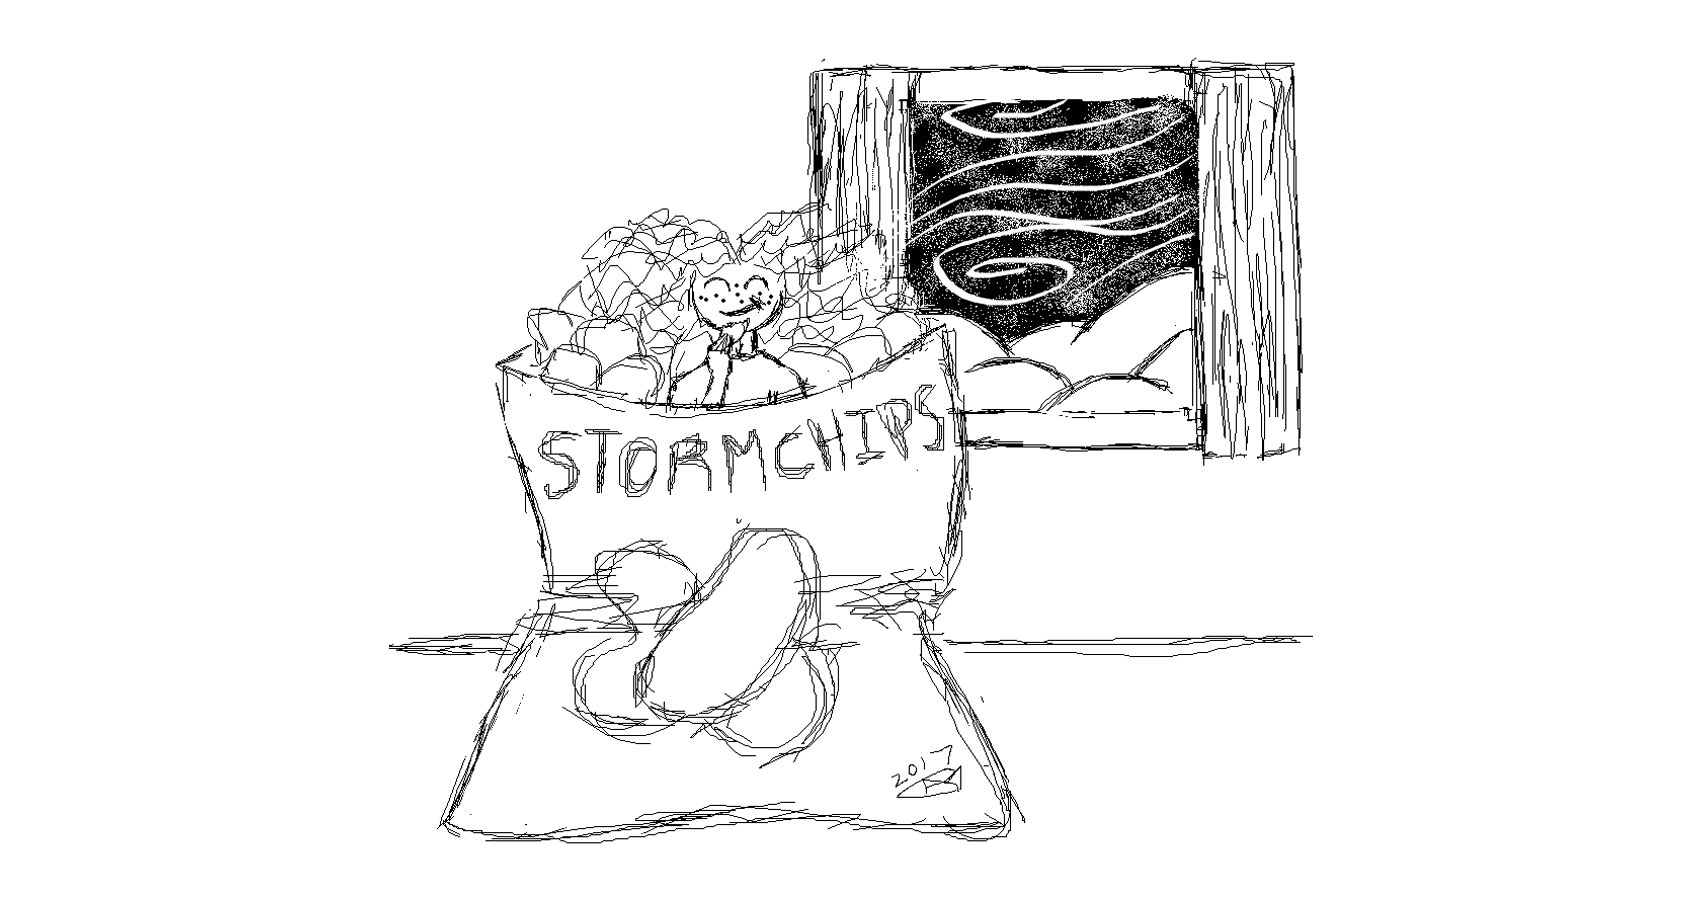 Stormchips written by Robyn MacKinnon at Spillwords.com